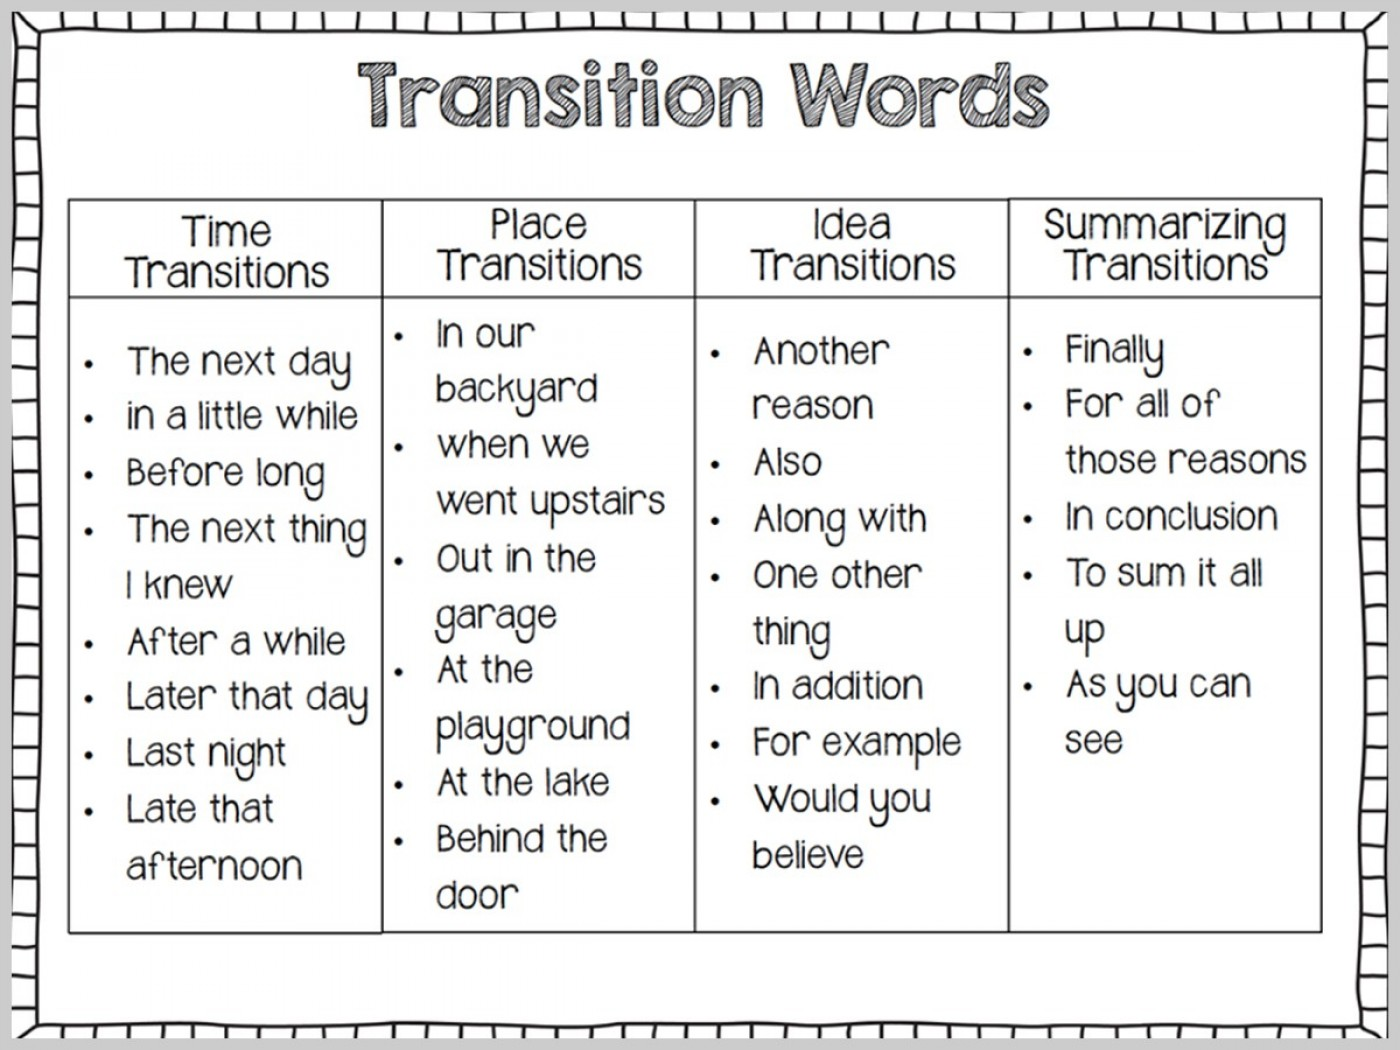 012 Essay Example Connecting Words For Essays Transition Goal Blockety Co French Forum Linking And Phrases Fluent Used In Incredible Ielts Comparison Pdf 1400